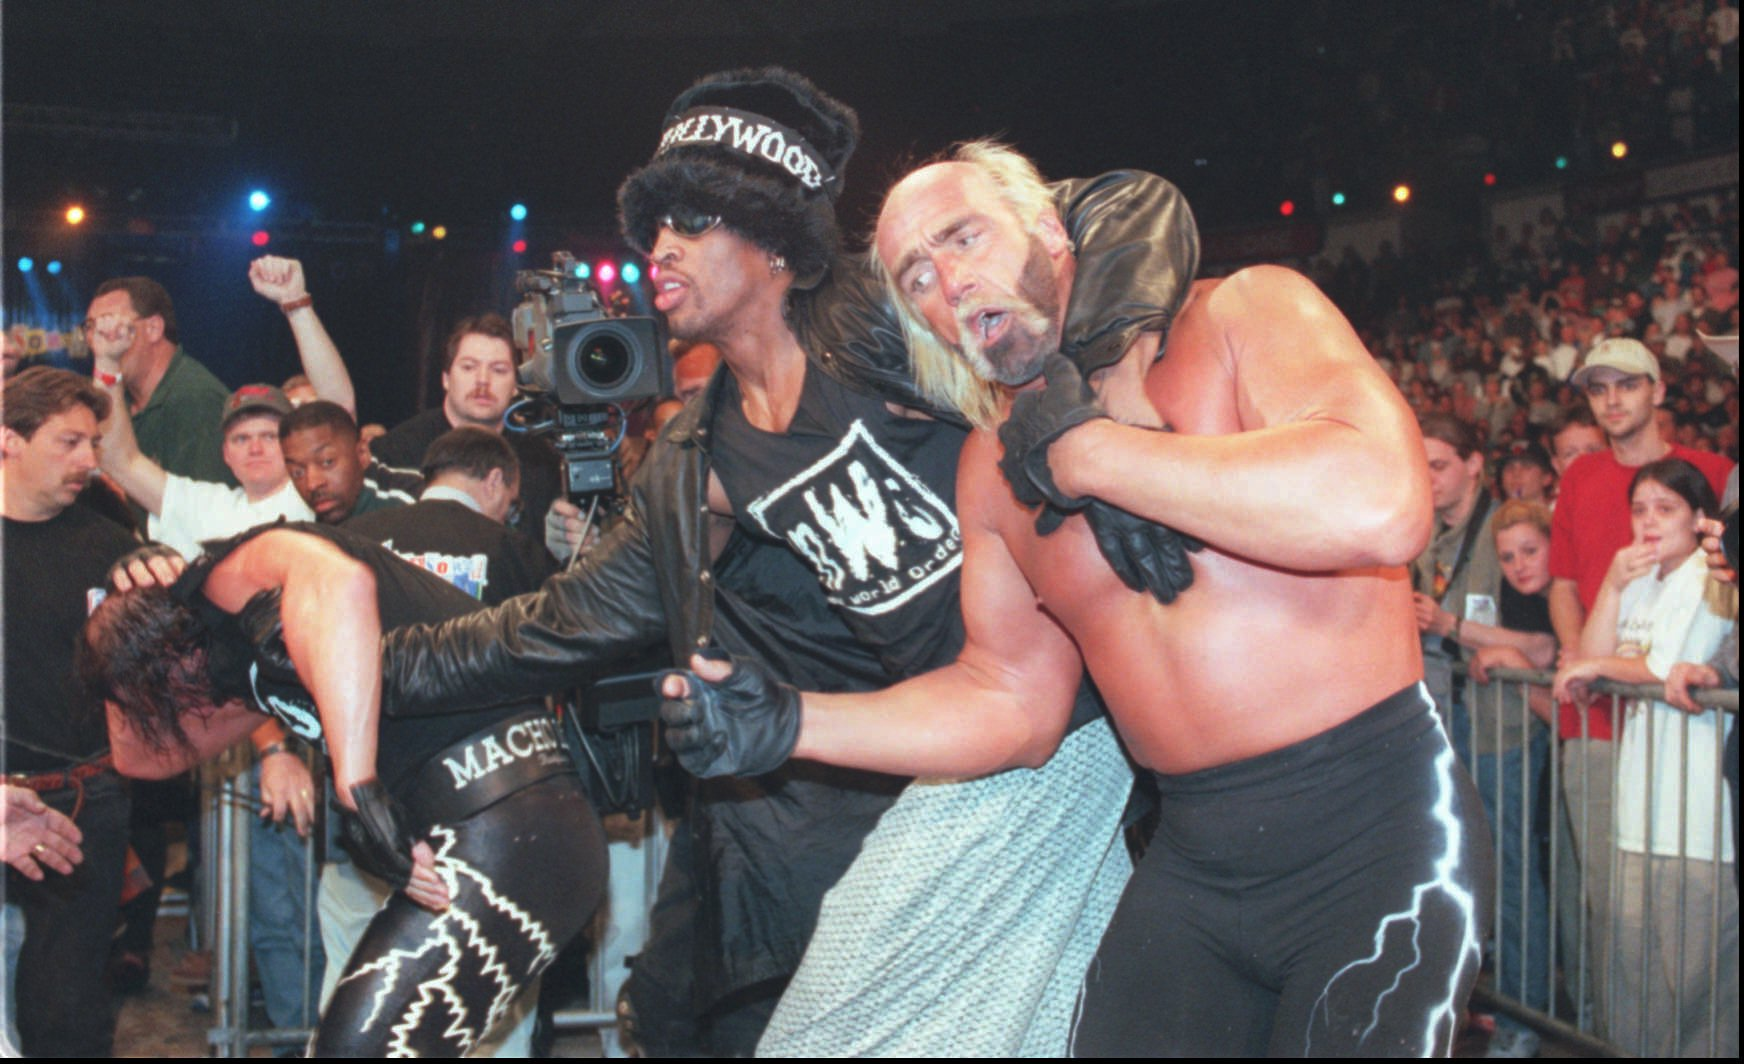 Hanging out with Hulk Hogan was one of Dennis Rodman's favorite pastimes.